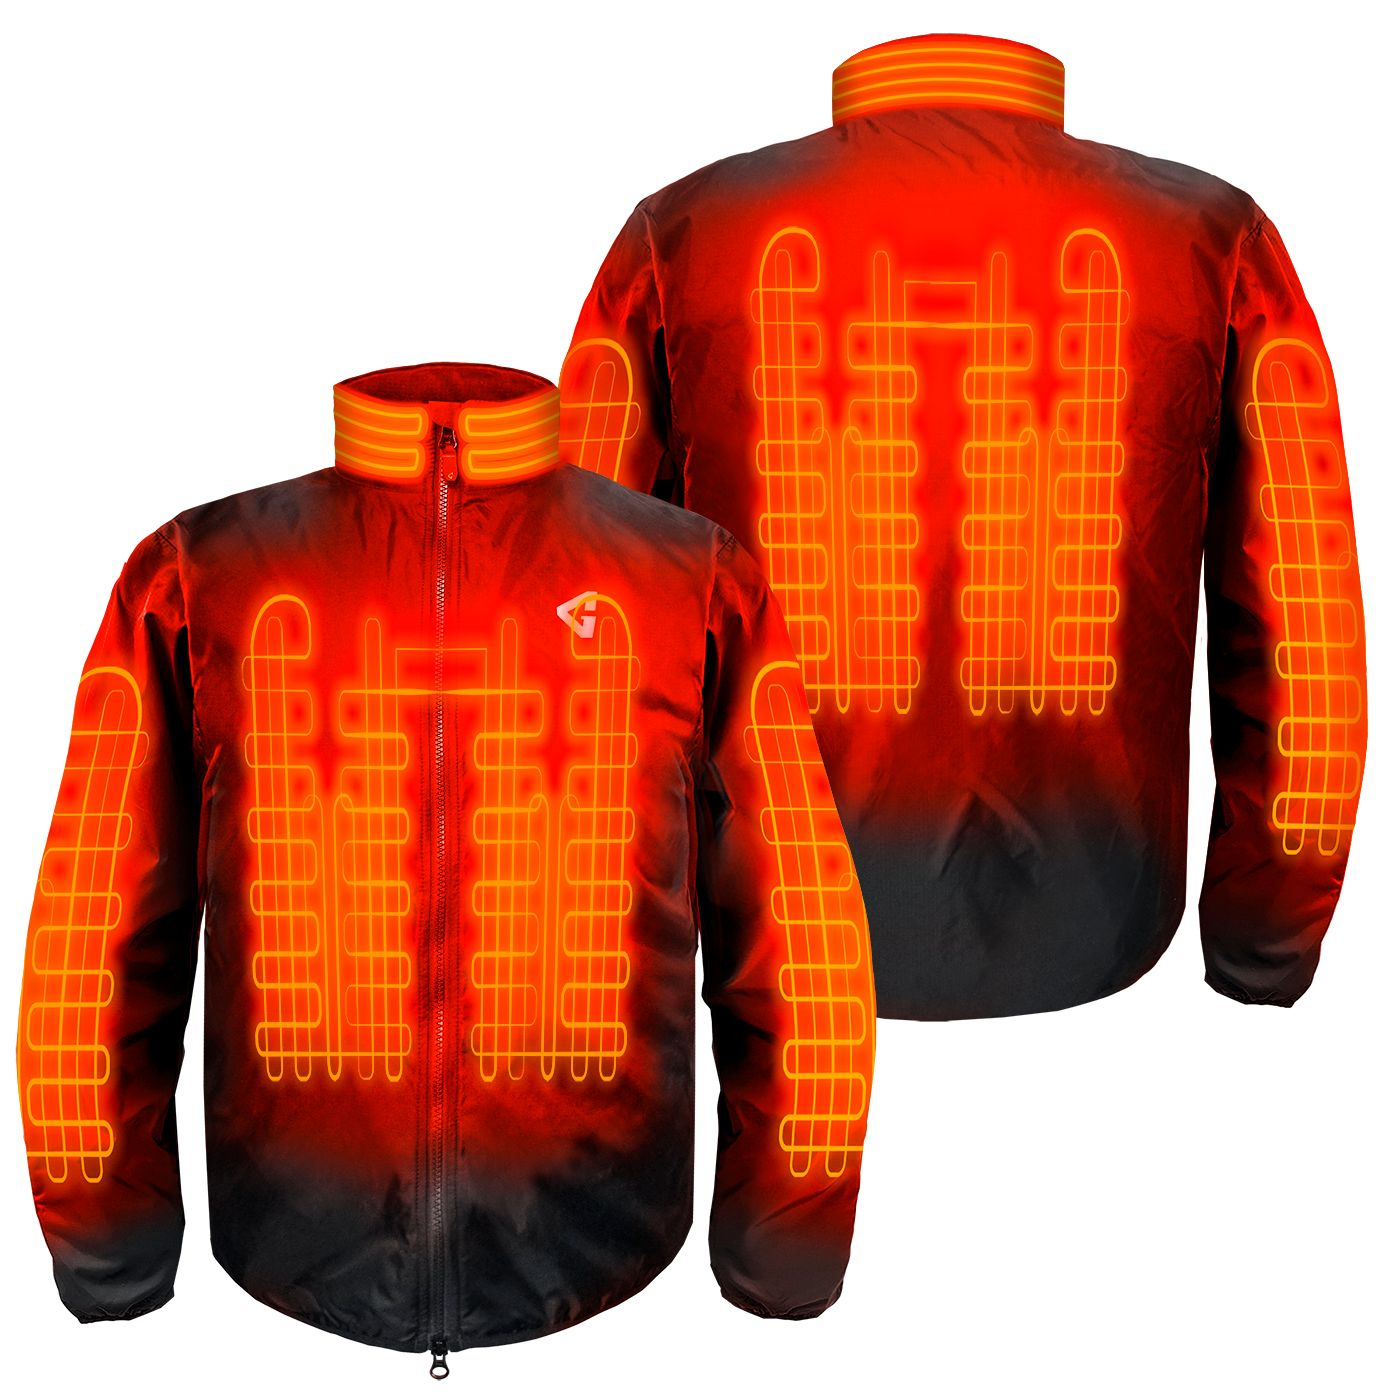 Heated Motorcycle Jackets Heated Jacket Liners The Warming Store